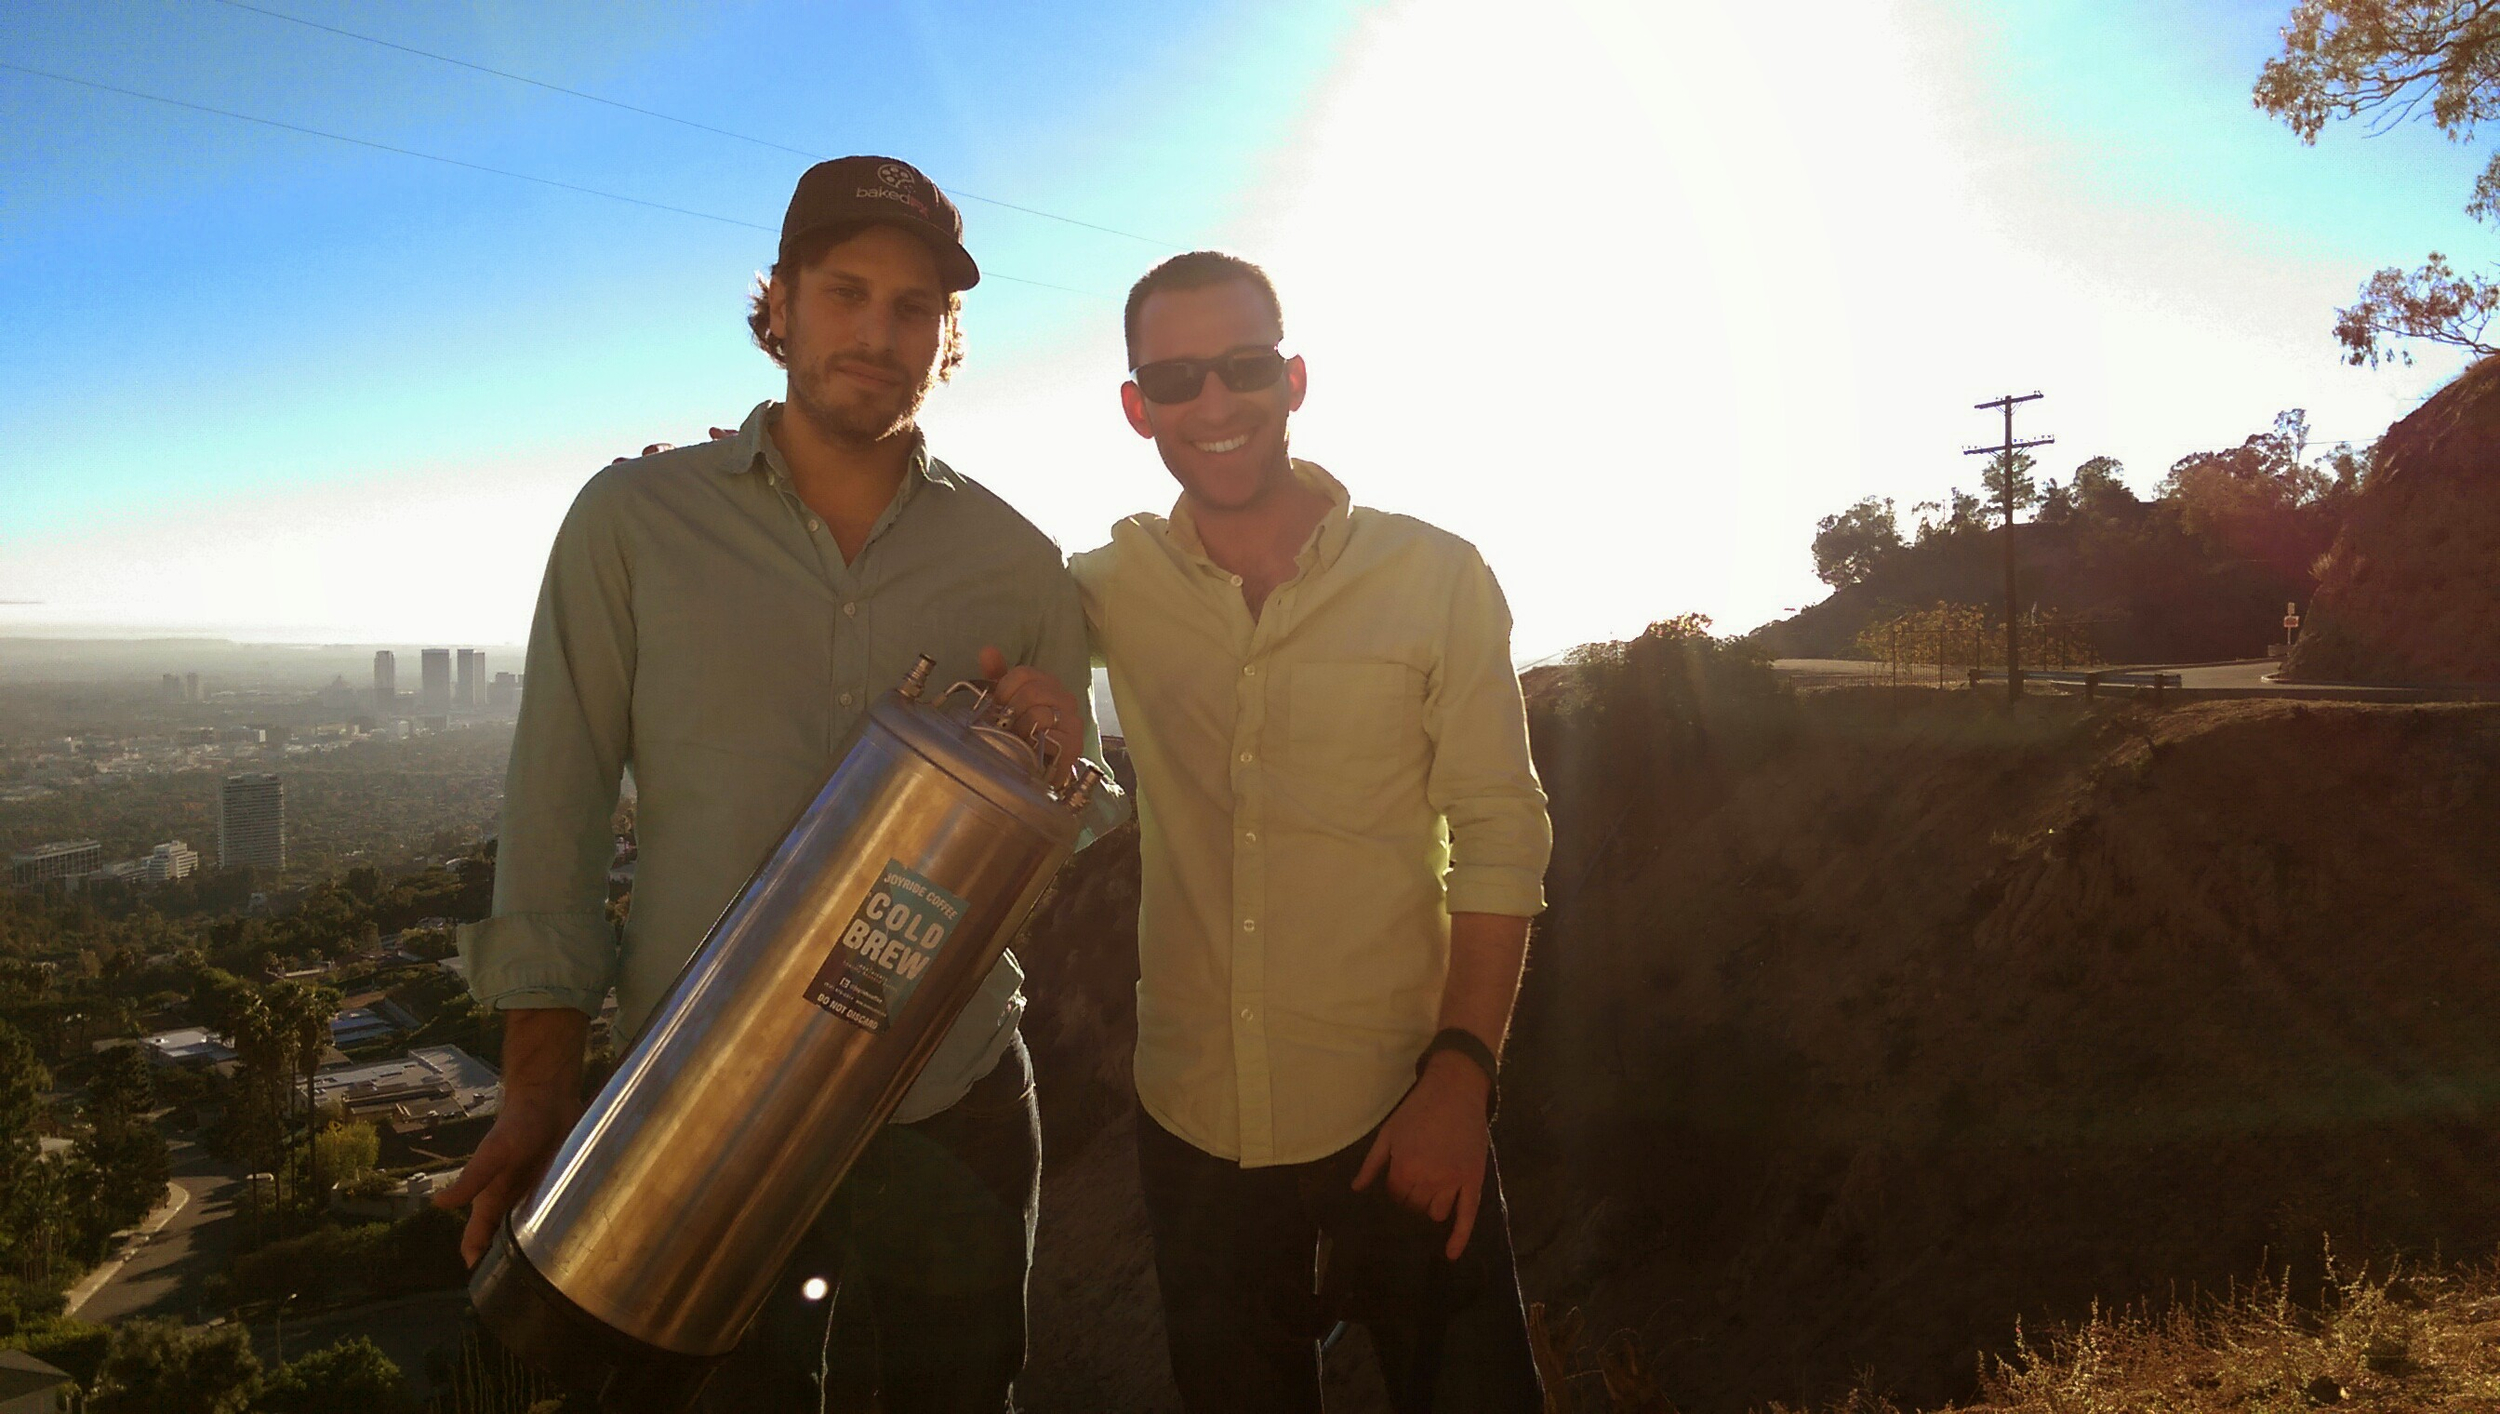 Rob and his VFX friend George in the hills of LA.